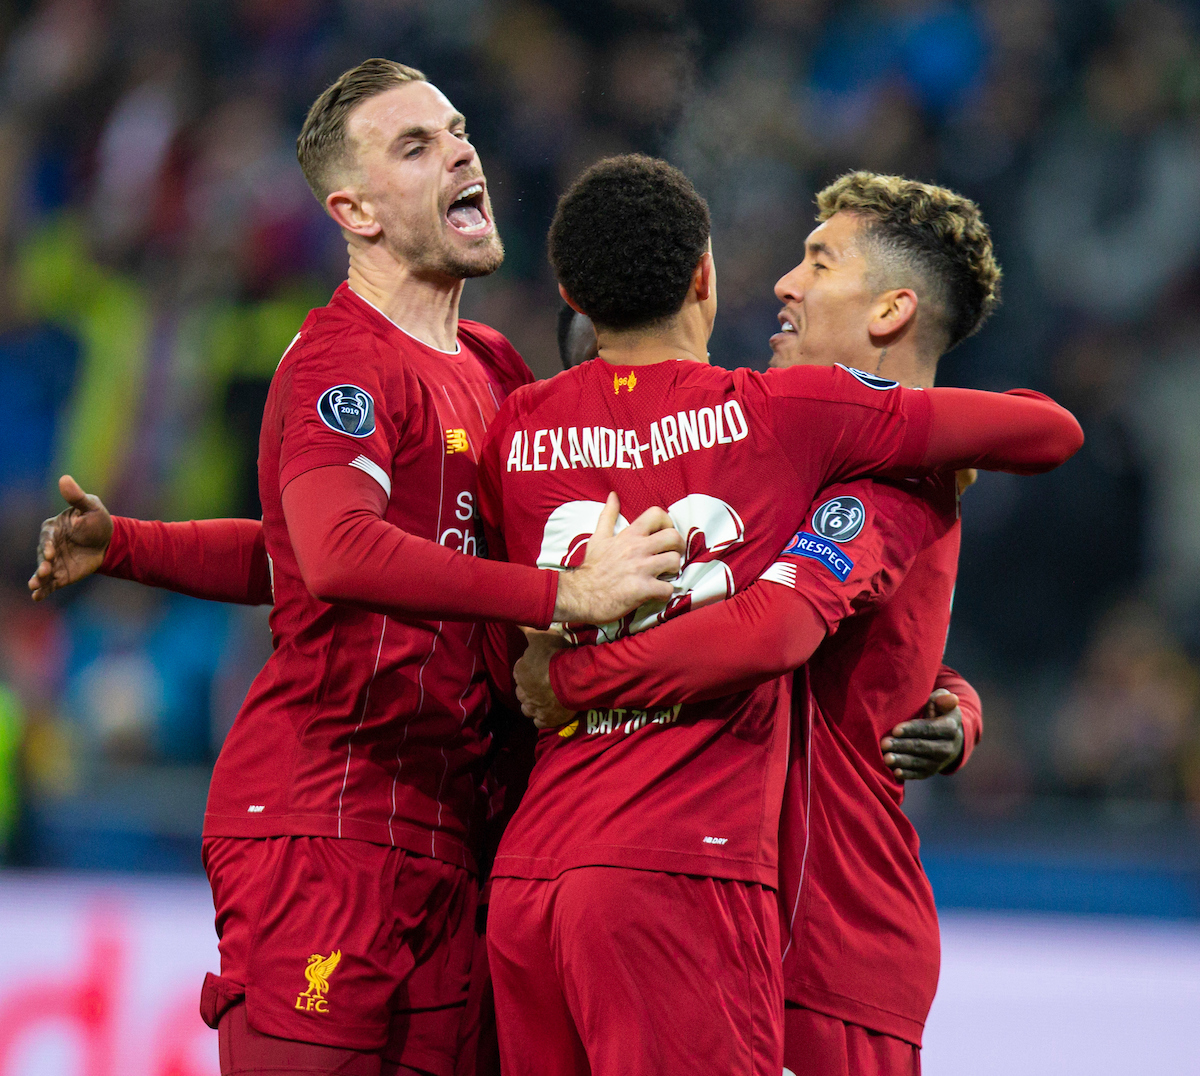 SALZBURG, AUSTRIA - Tuesday, December 10, 2019: Liverpool players captain Jordan Henderson, Trent Alexander-Arnold and Roberto Firmino celebrate the opening goal scored by Sadio Mané (hidden) during the final UEFA Champions League Group E match between FC Salzburg and Liverpool FC at the Red Bull Arena. (Pic by David Rawcliffe/Propaganda)